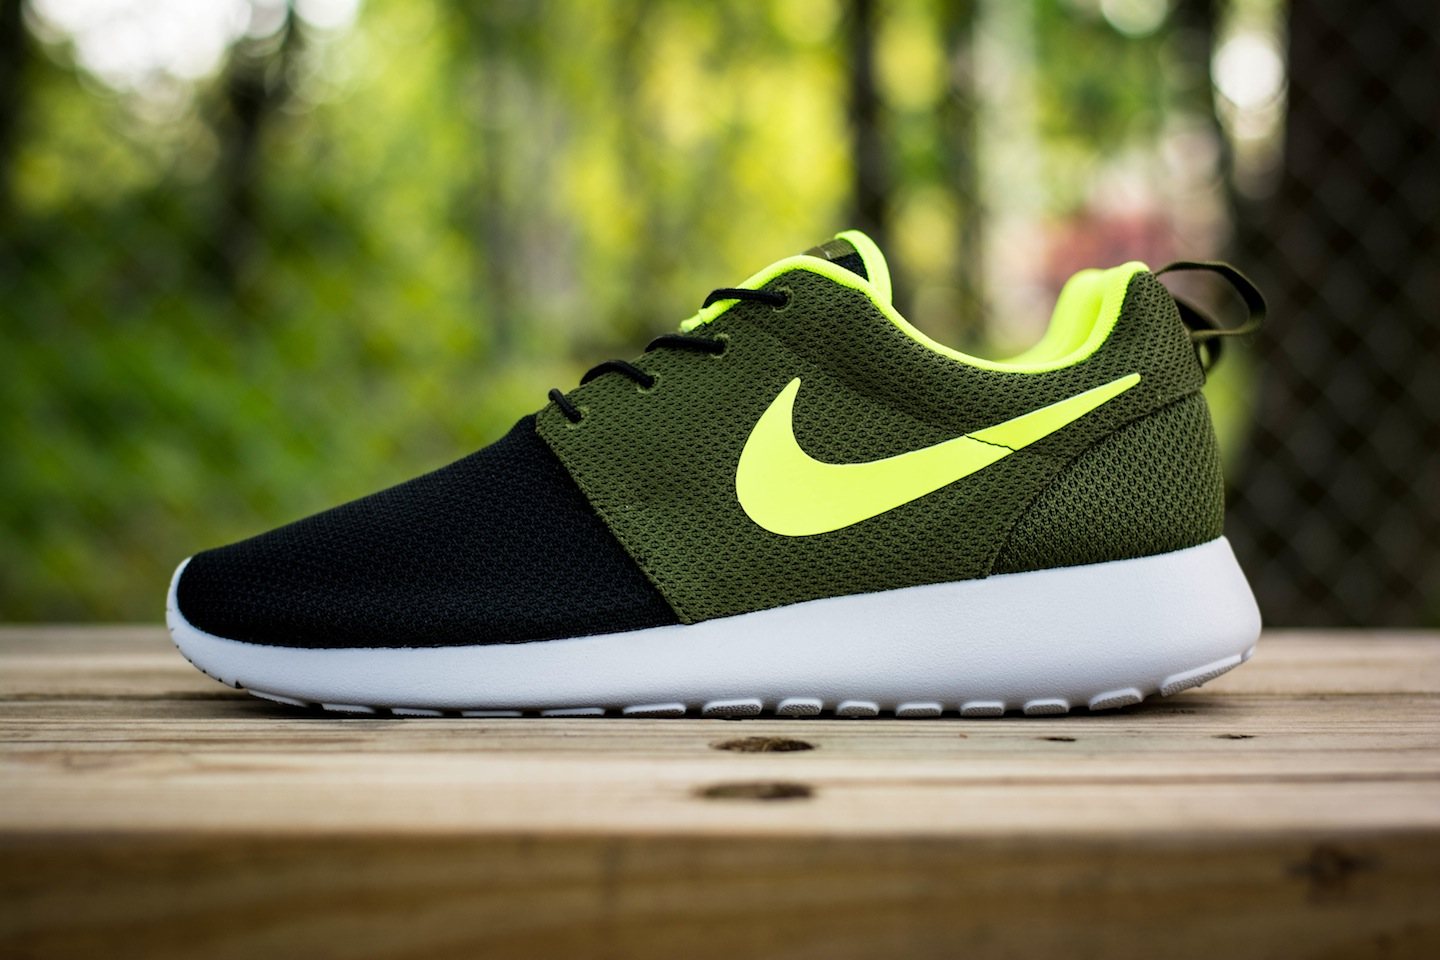 the roshe run